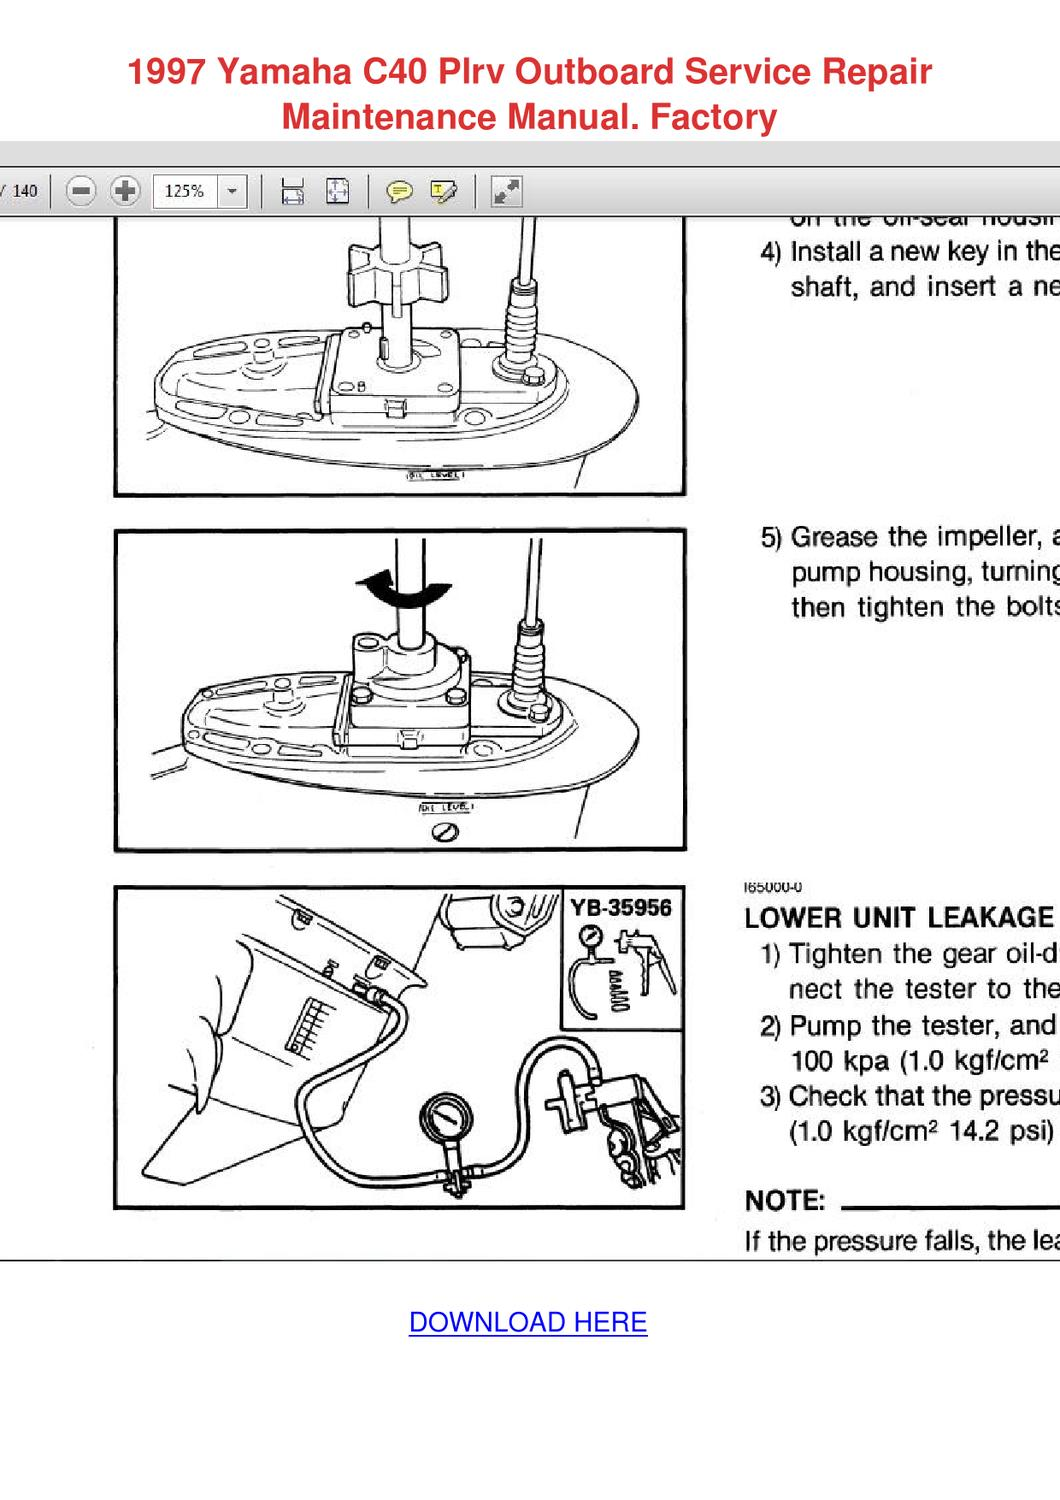 1993 yamaha service manual outboard download